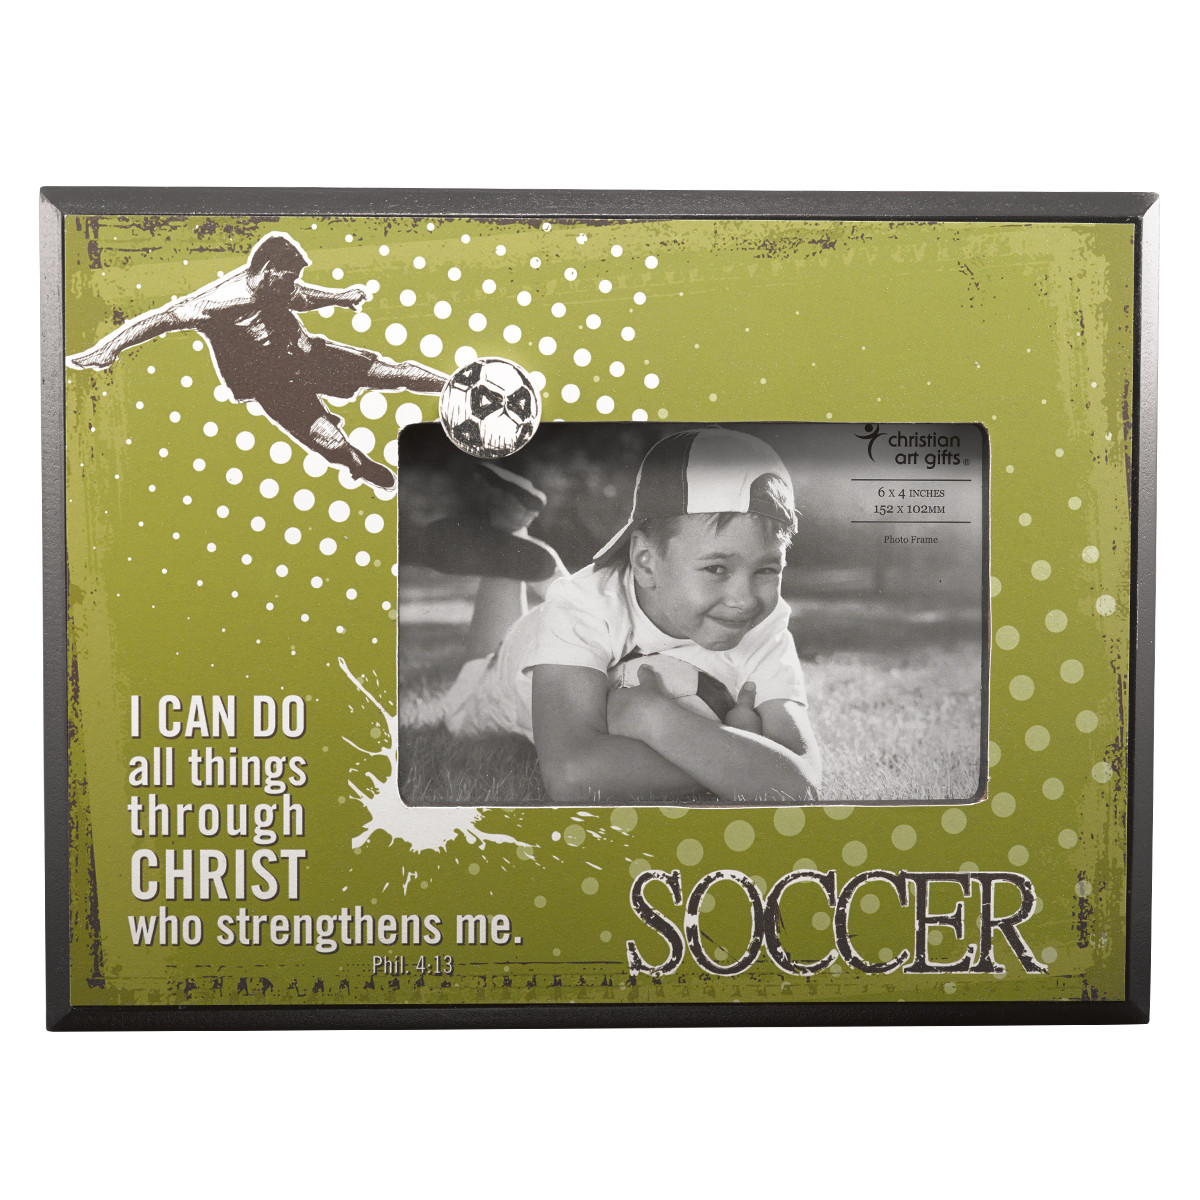 Soccerphil 413 green wooden photo frame jeuxipadfo Images